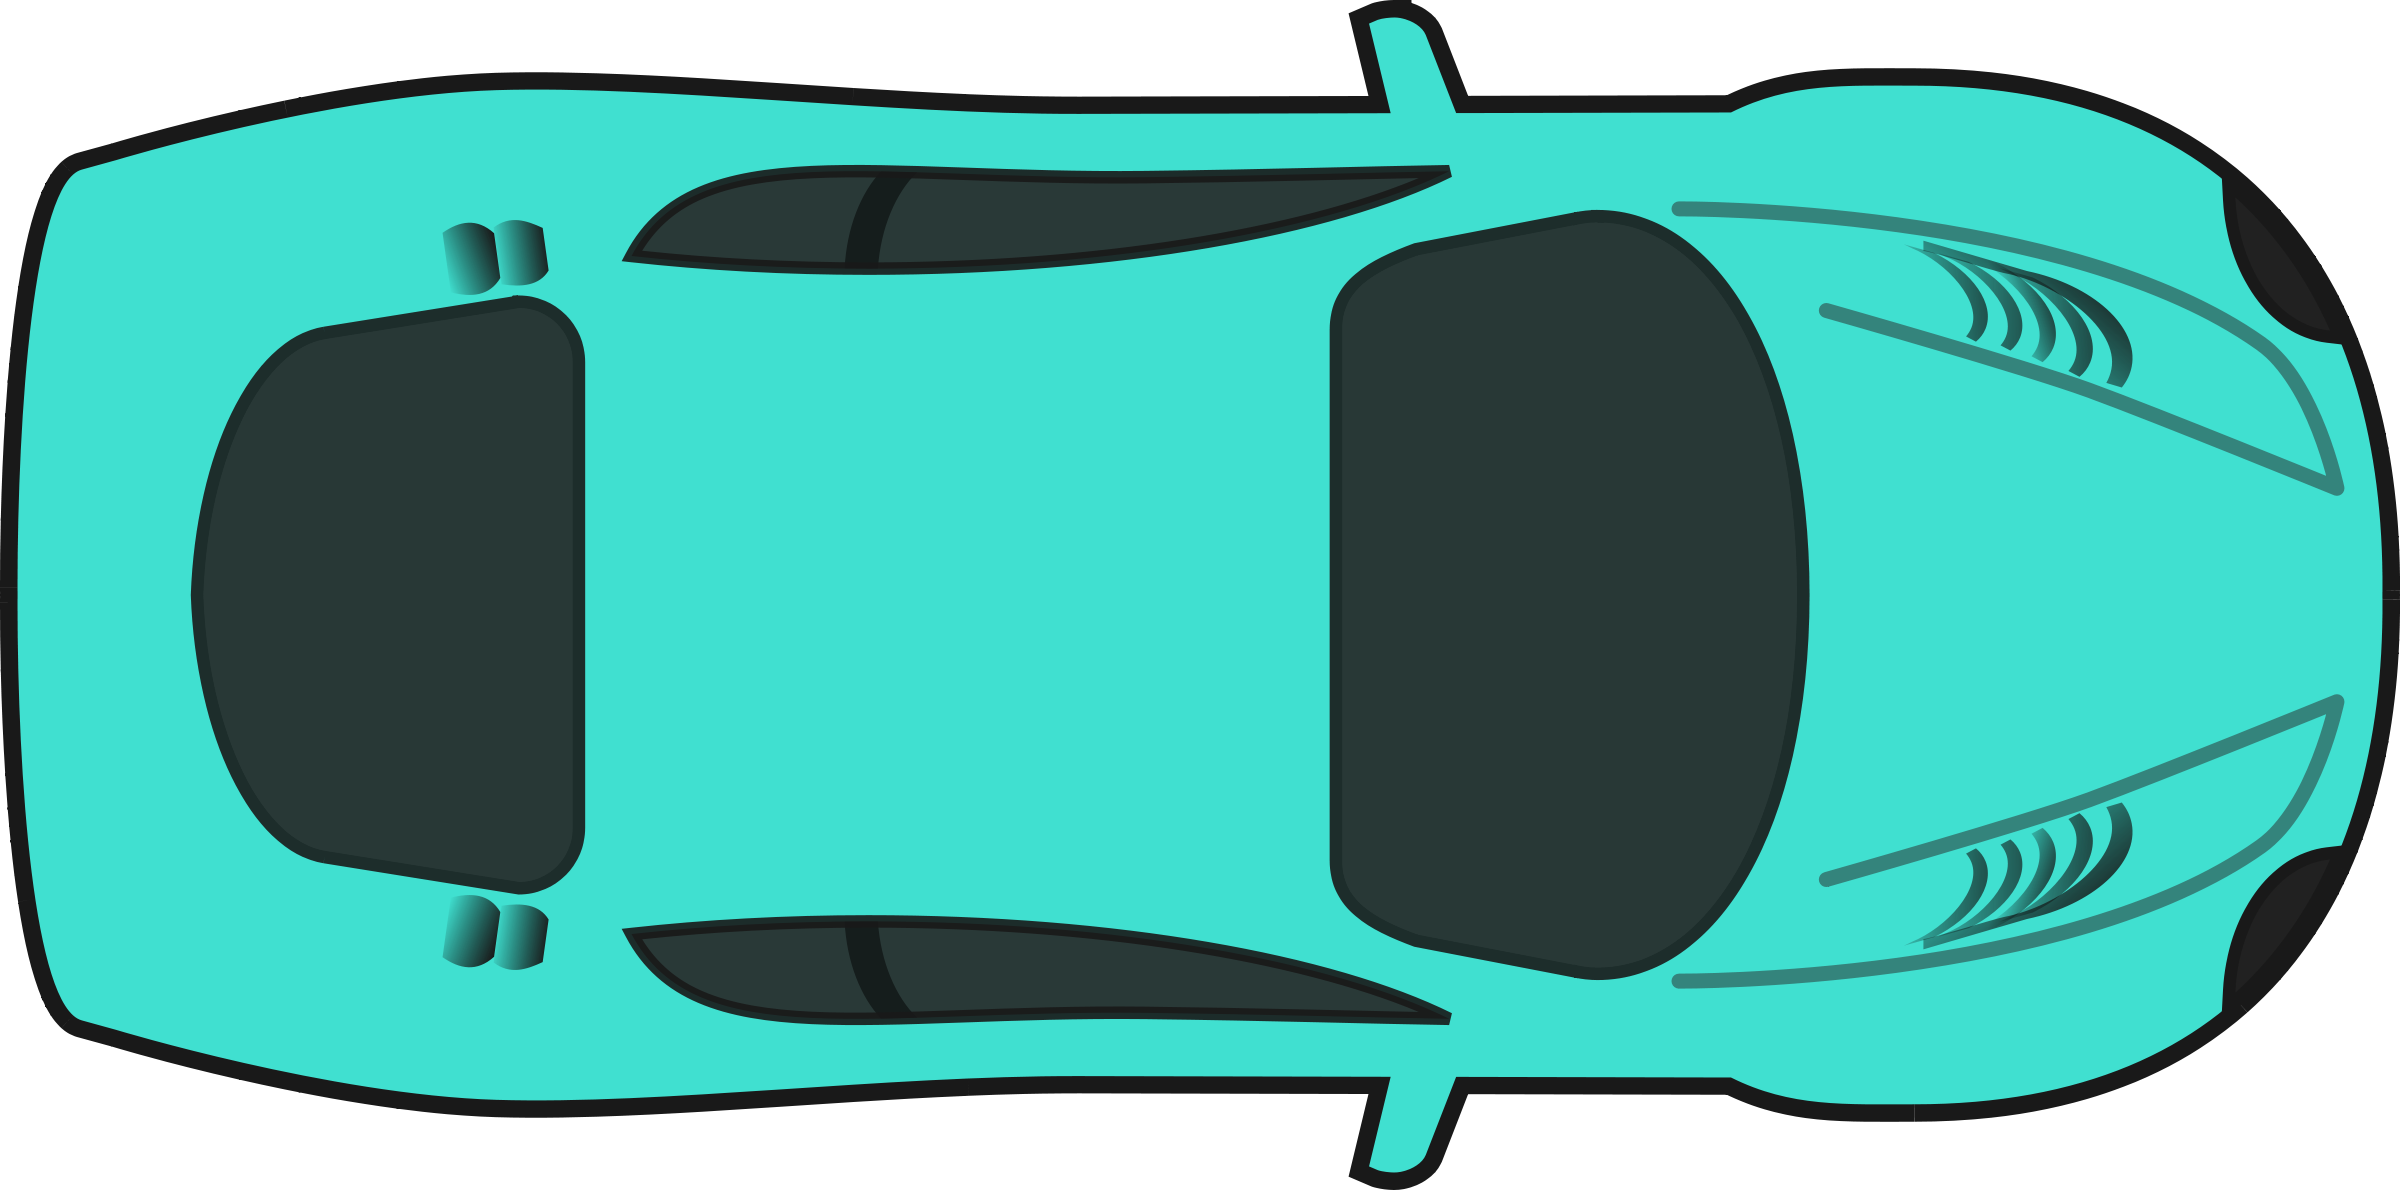 Car from above clipart.